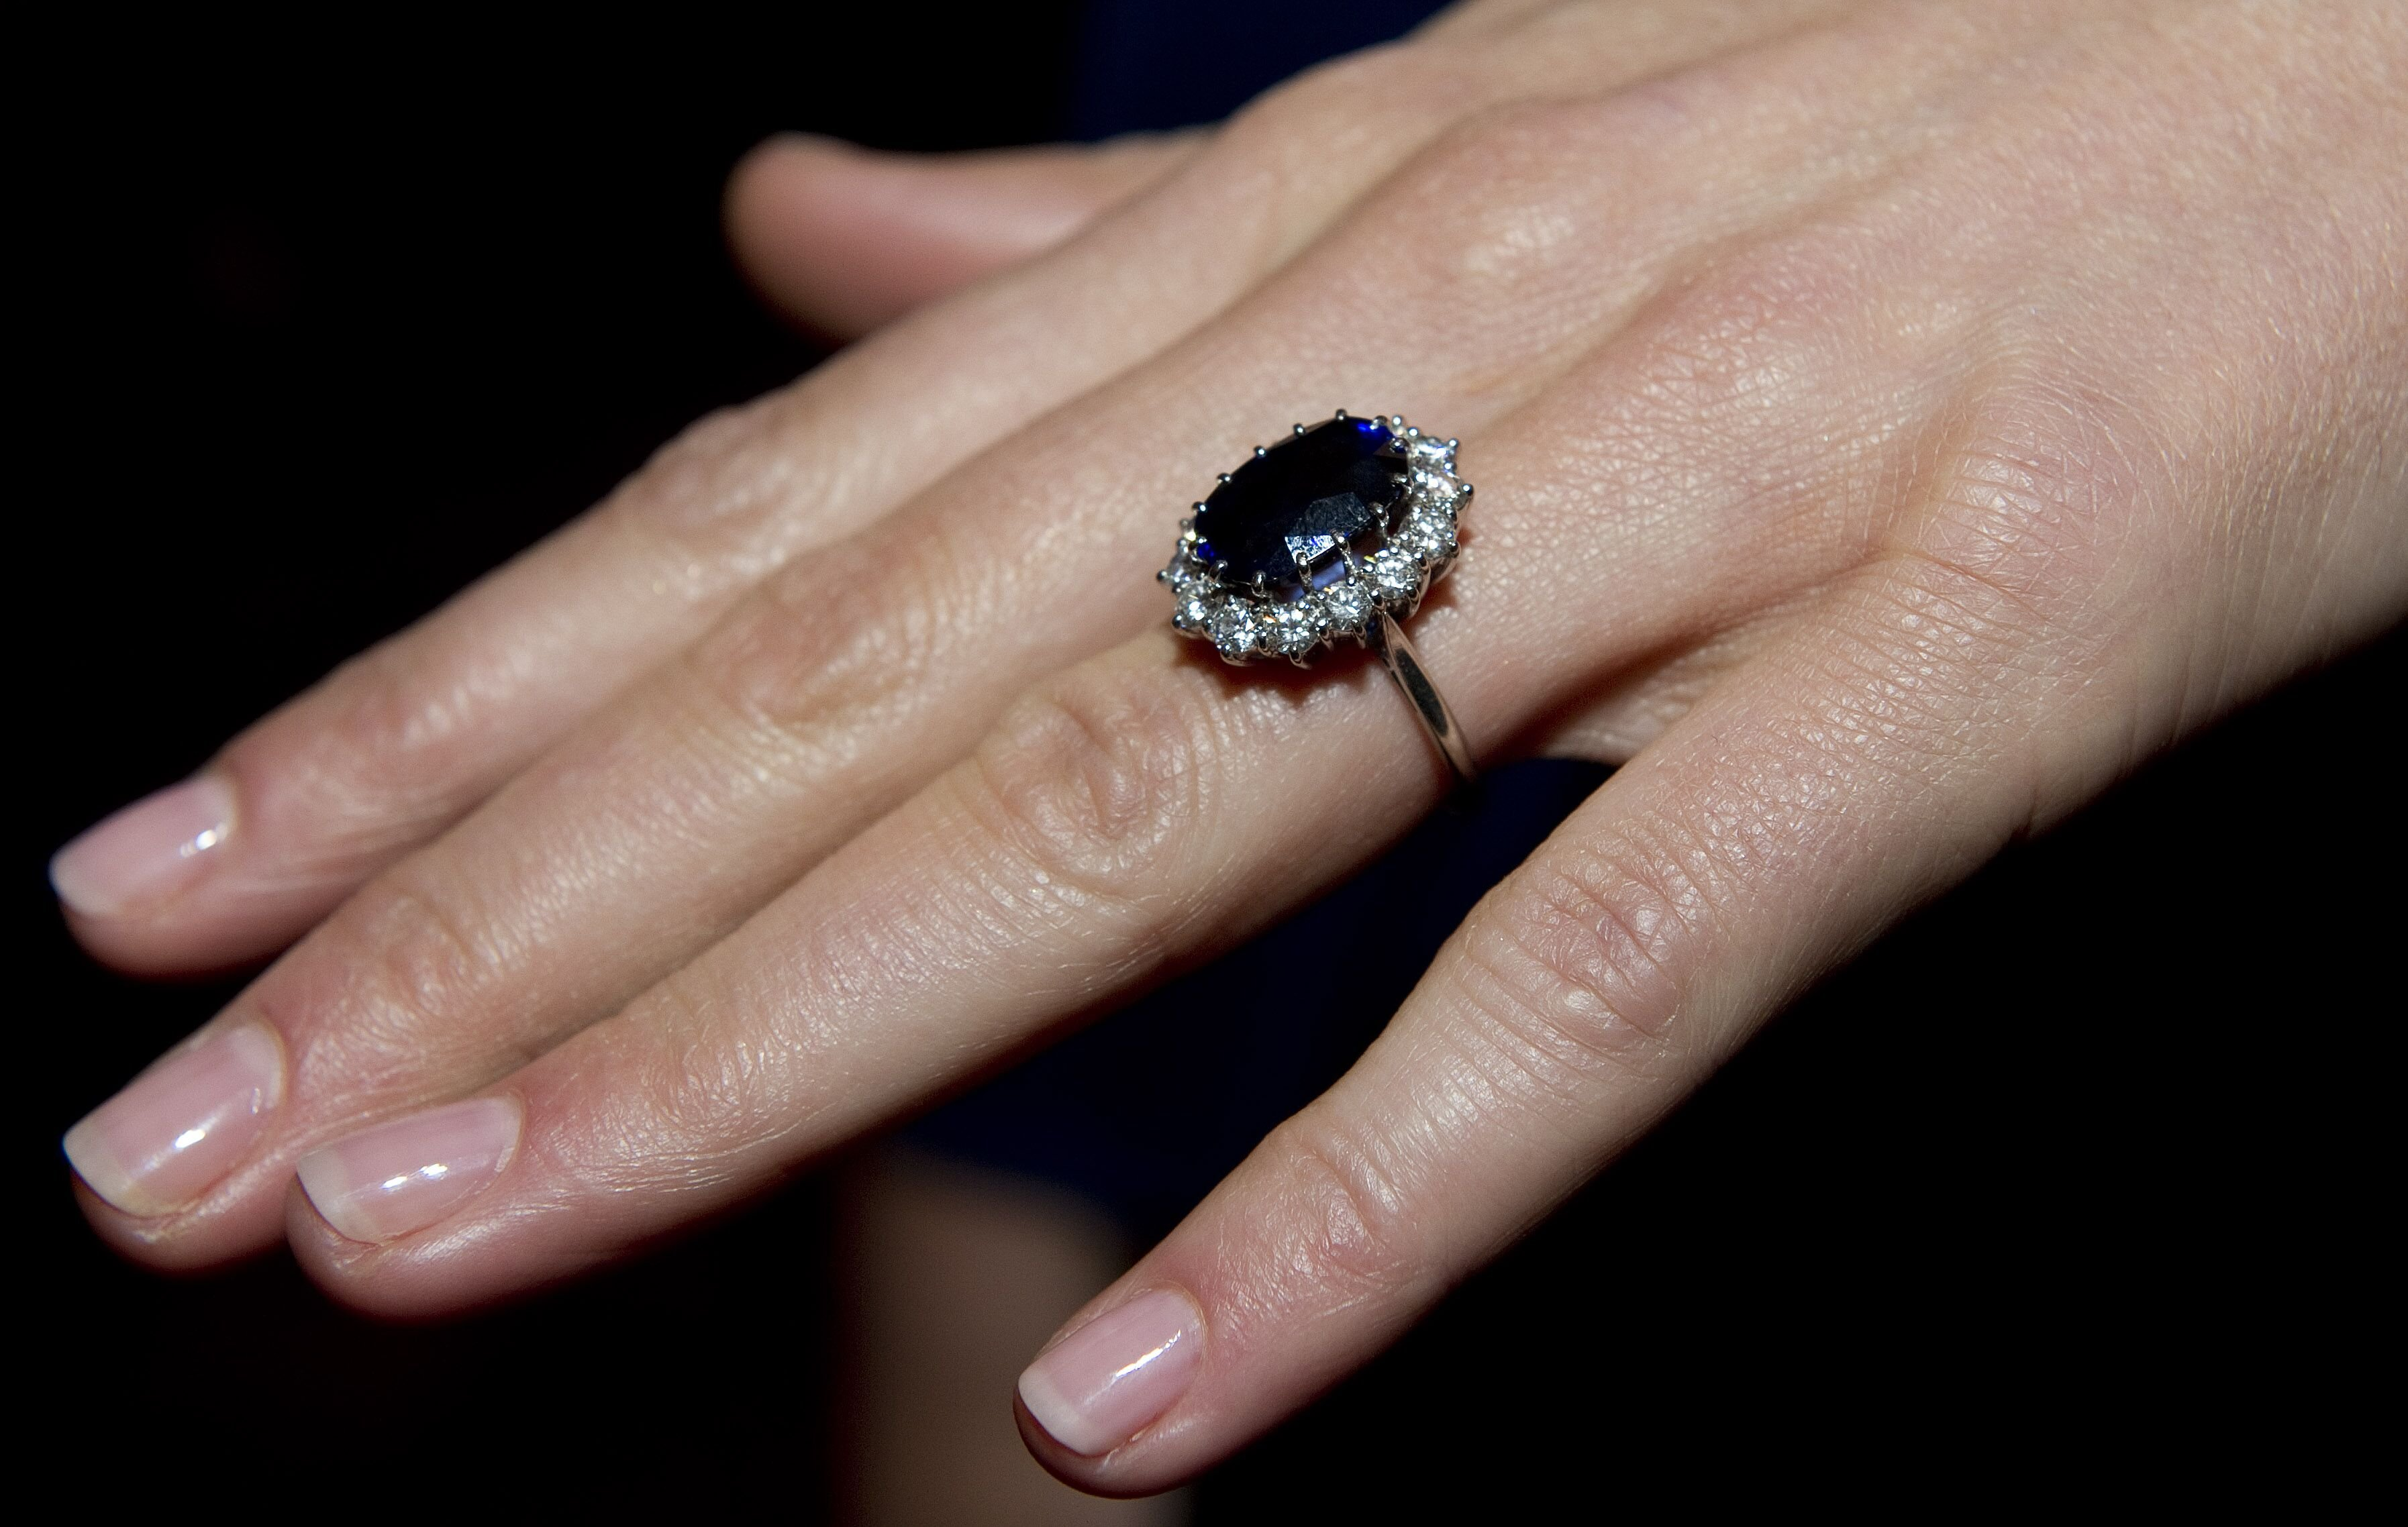 Princess Diana's engagement ring worn by the Duchess of Cambridge in 2009| Source: Getty Images